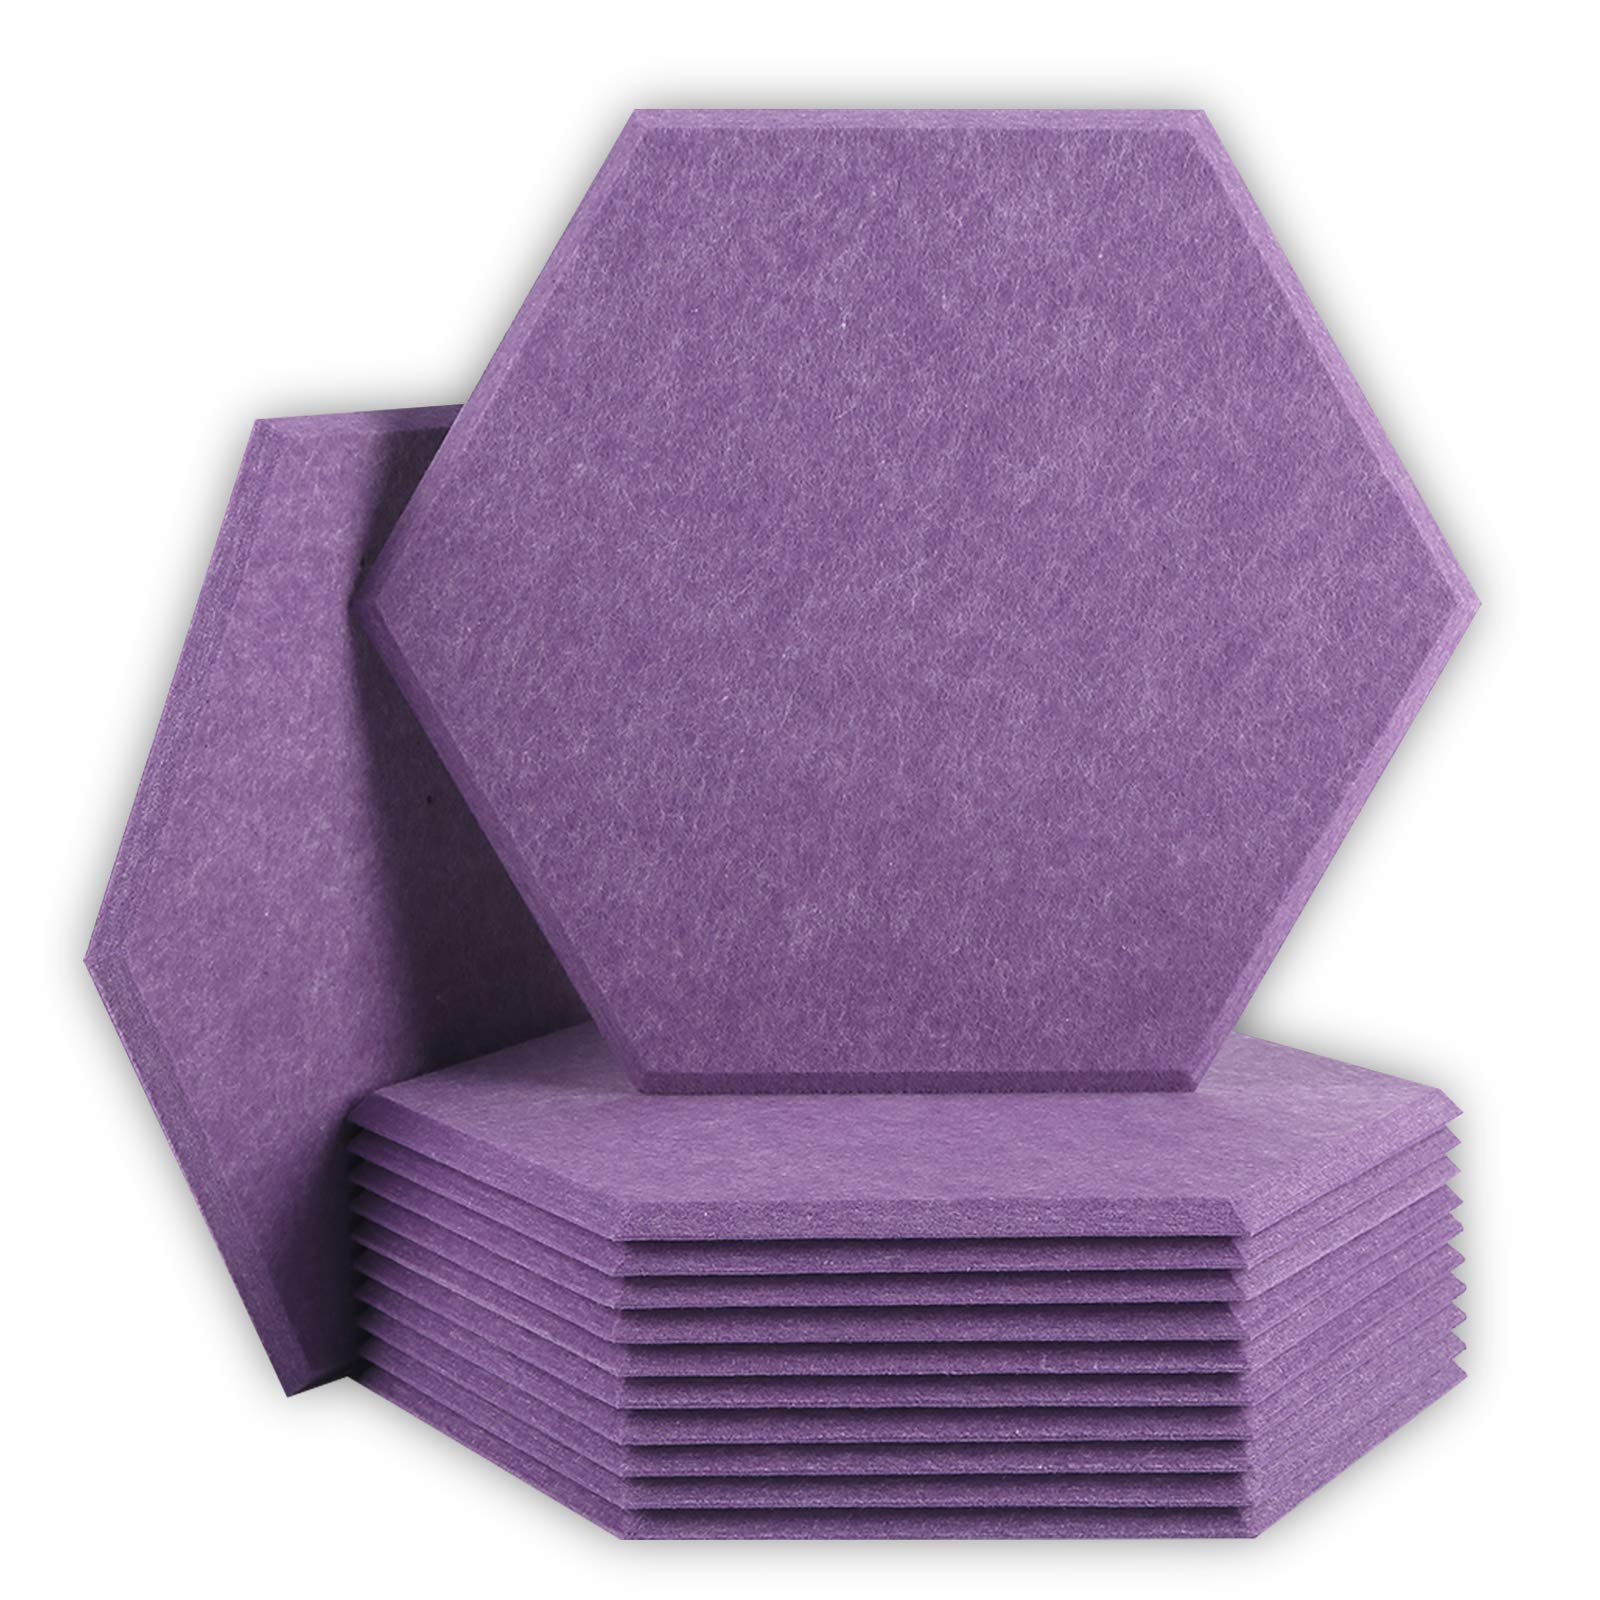 BUBOS 12 Pack Hexagon Acoustic Panels Soundproof Wall Panels,14 X 13 X 0.4Inches Sound Absorbing Panels Acoustical Wall Panels, Acoustic Treatment for Recording Studio, Office, Home Studio,Purple